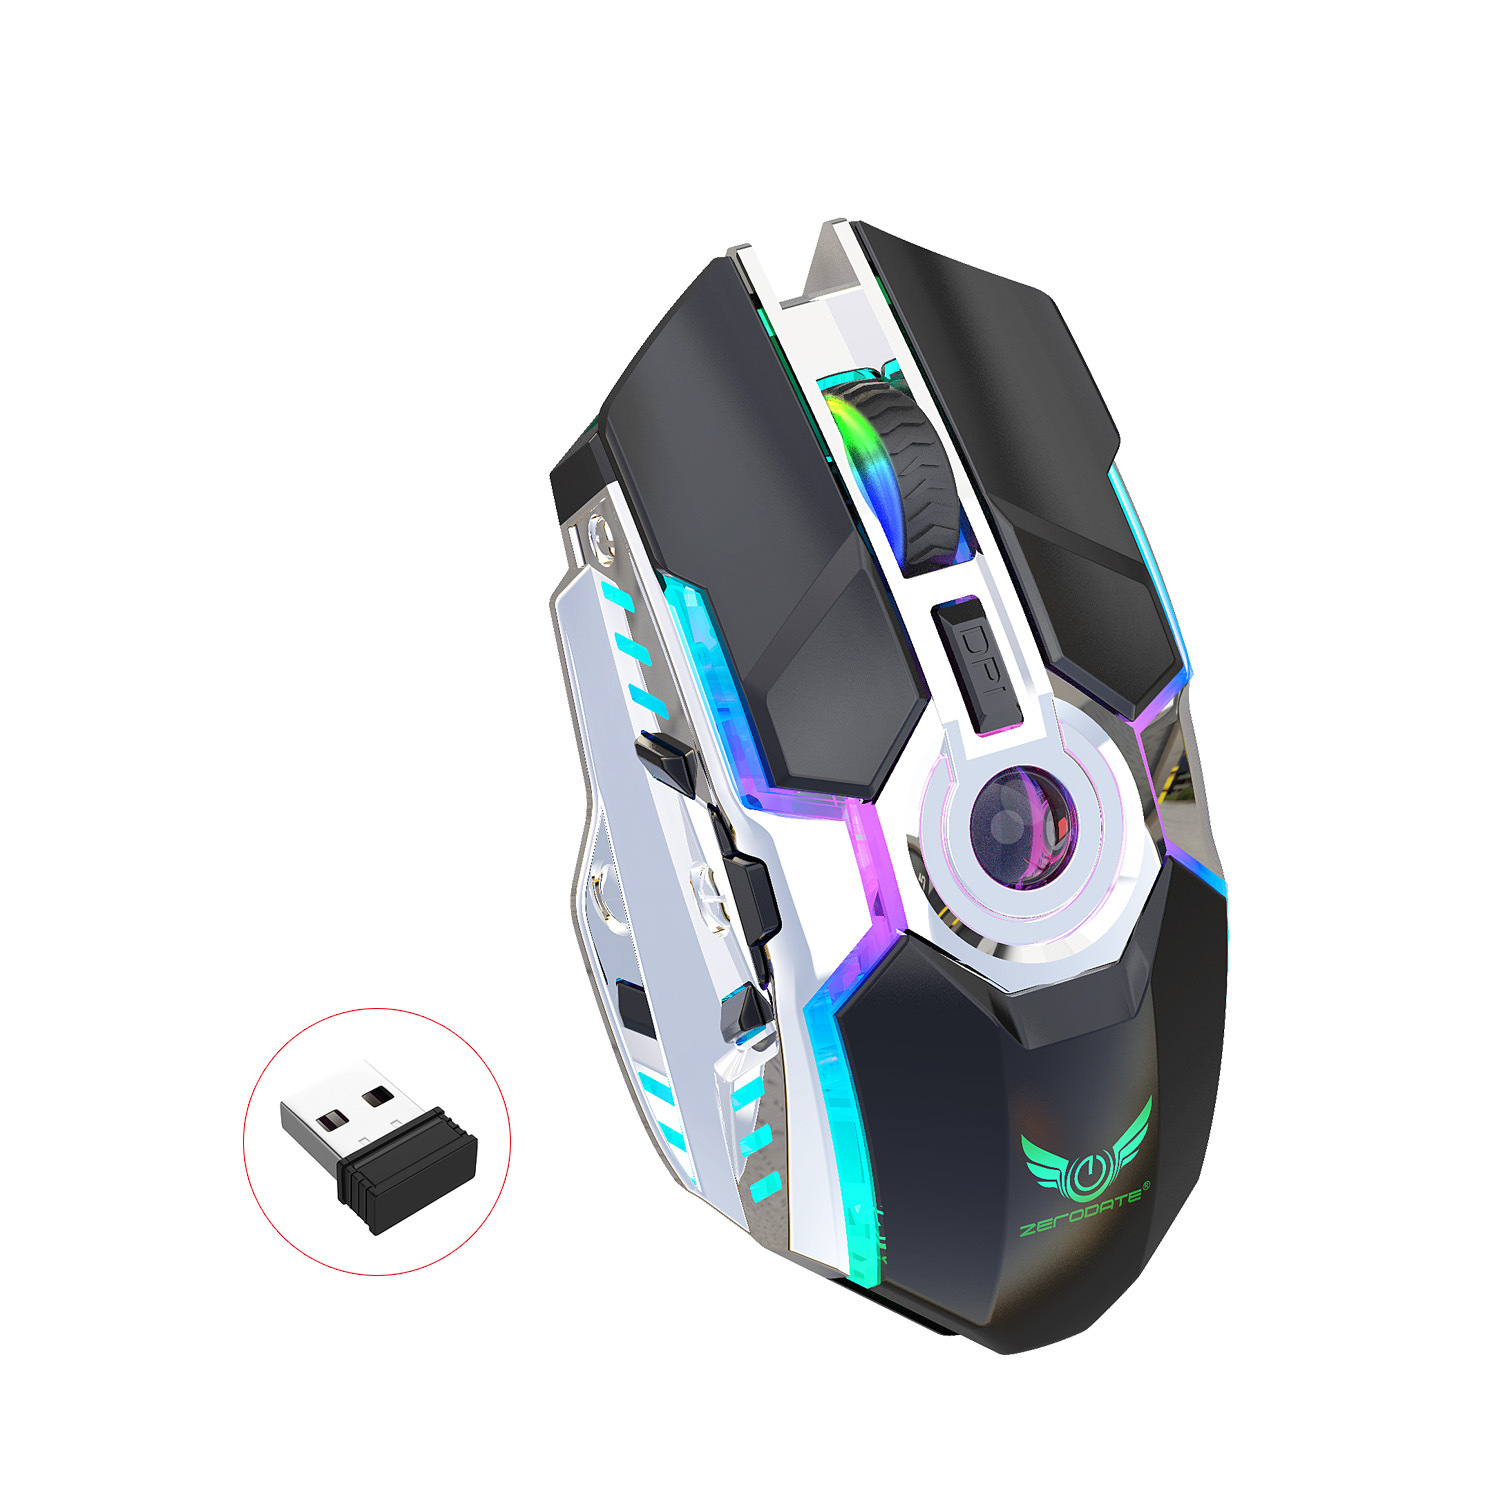 HBBOOI Optical Magnetic RGB Mouse Wired Colorful 1600 DPI Adjustable Non-Slip Side Ergonomic Mouse for PC Computer Laptop Notebook